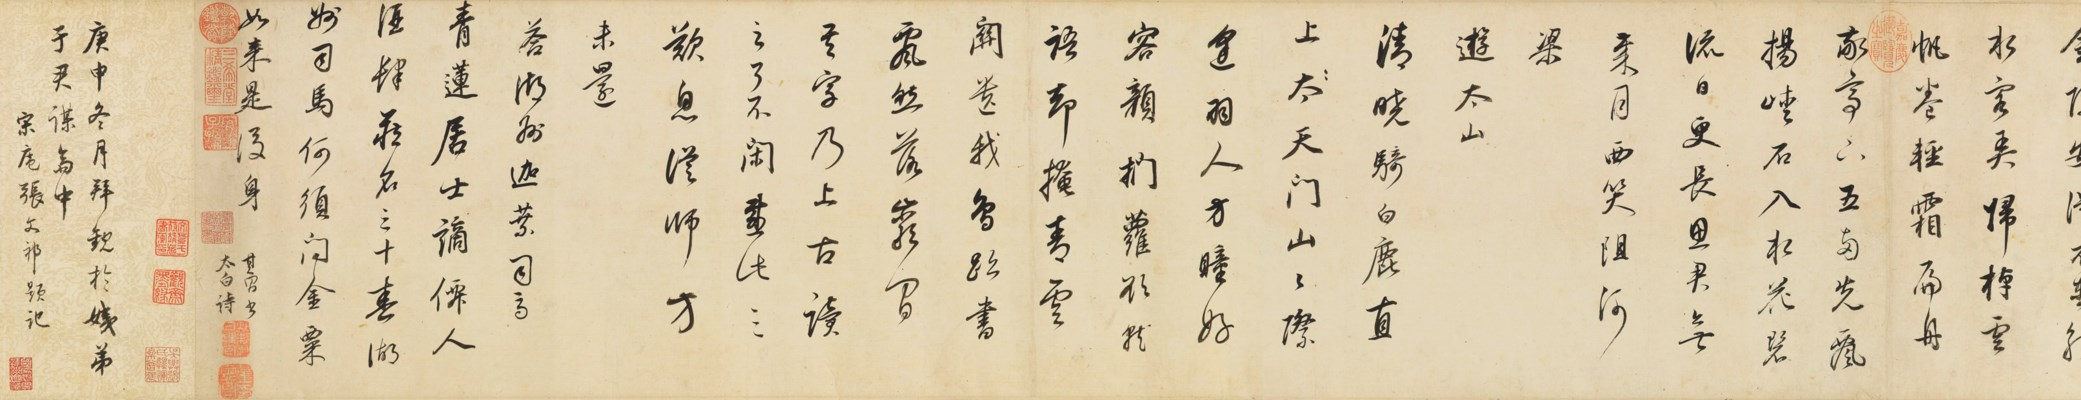 Dong qichang poems in running script